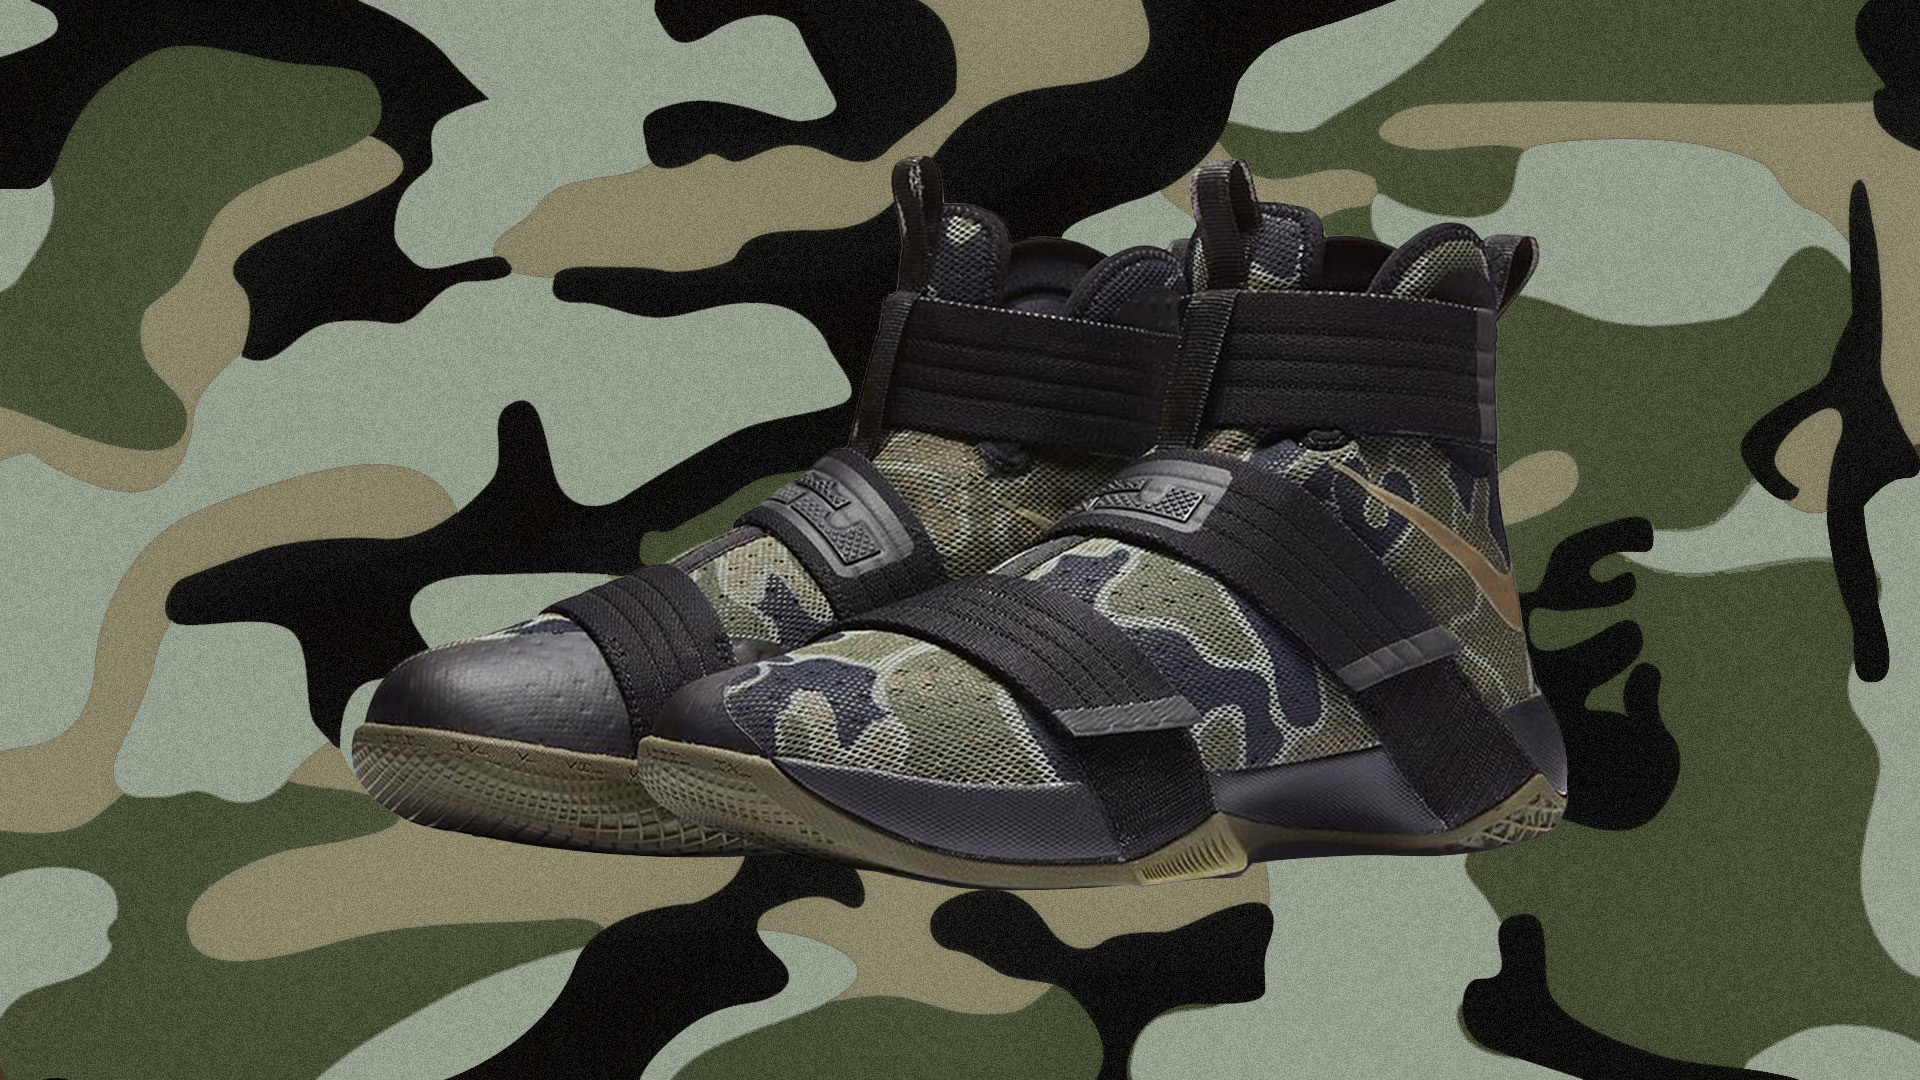 d9ead68358e7 netherlands foot locker nike zoom lebron soldier 10 camo 59fff 6aaf9  ebay  post navigation ad291 984fd